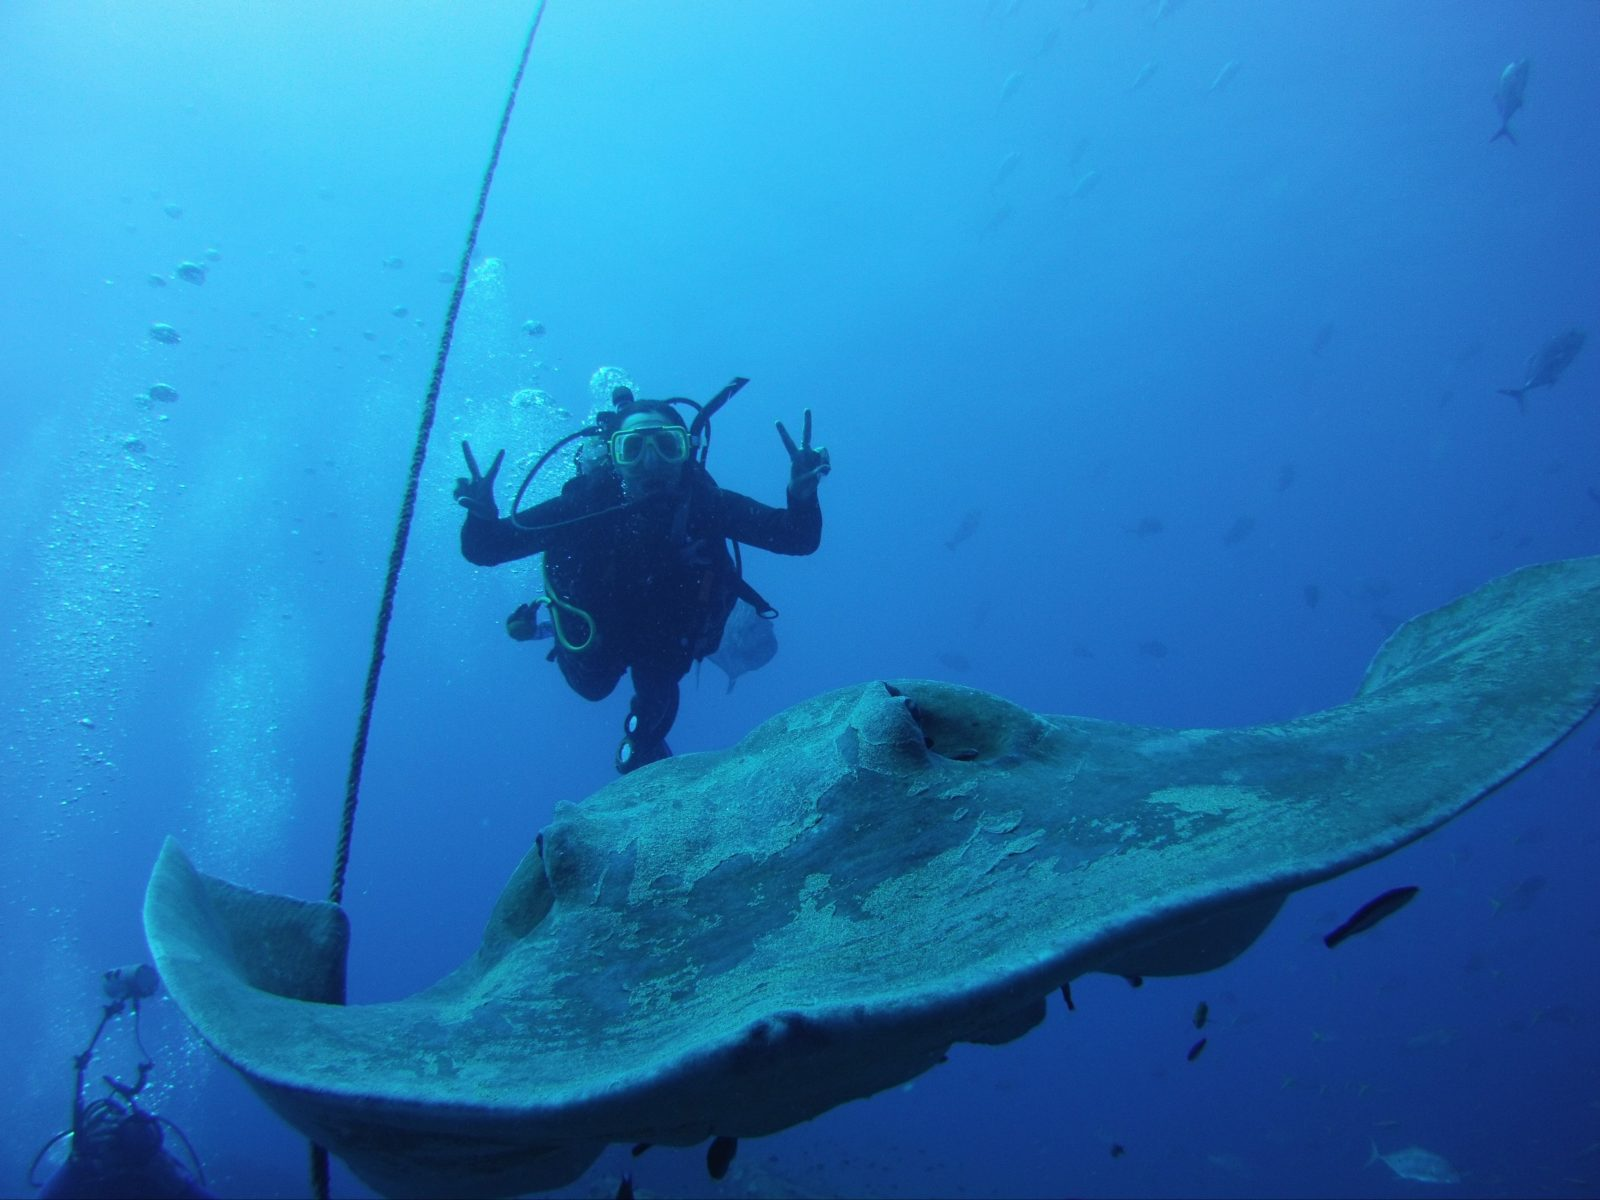 Giant Rays are regular visitors